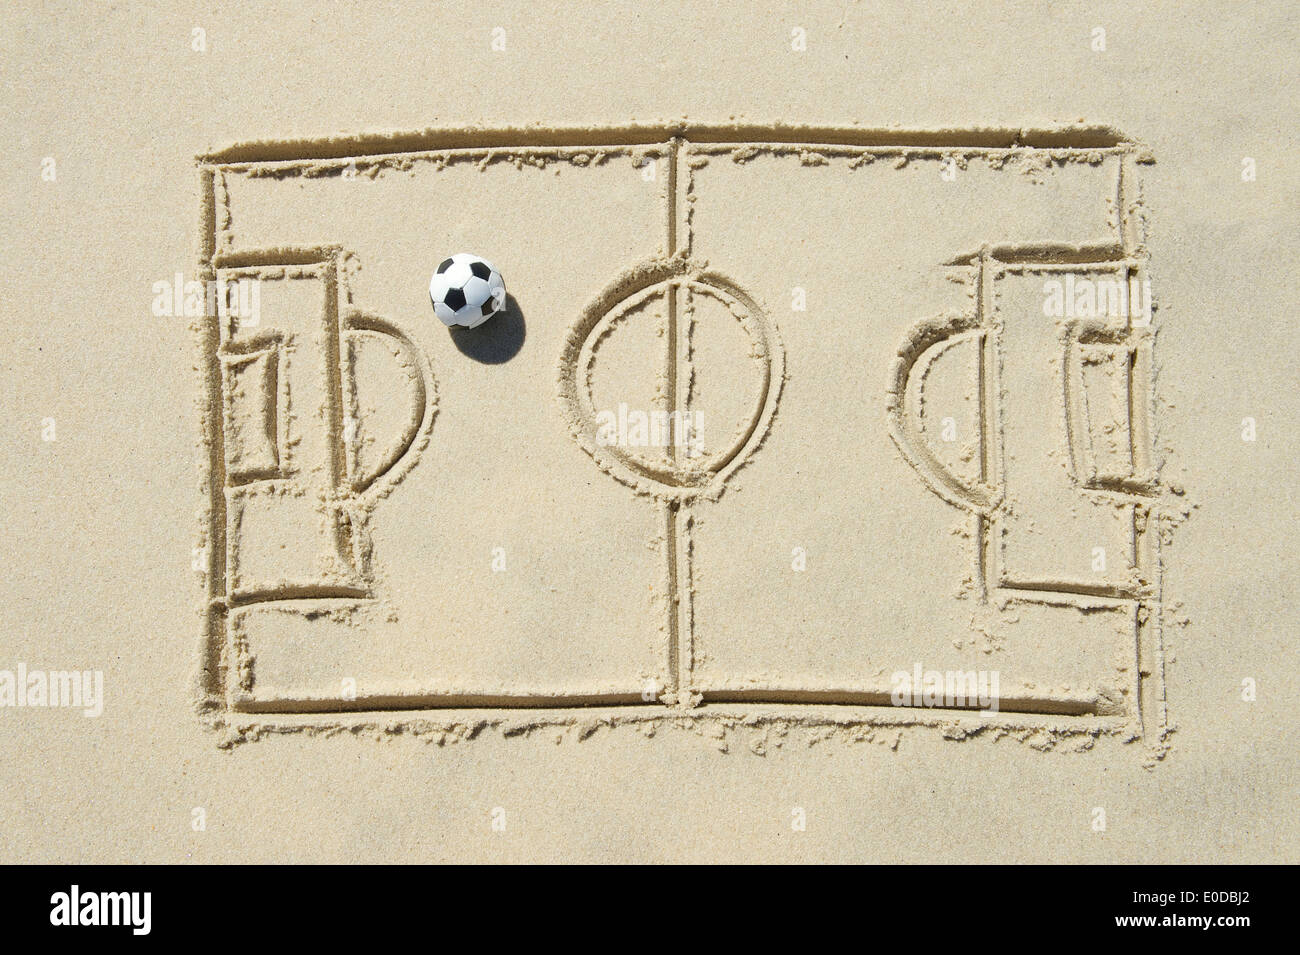 Simple line drawing of football pitch with soccer ball in sand on Brazilian beach - Stock Image